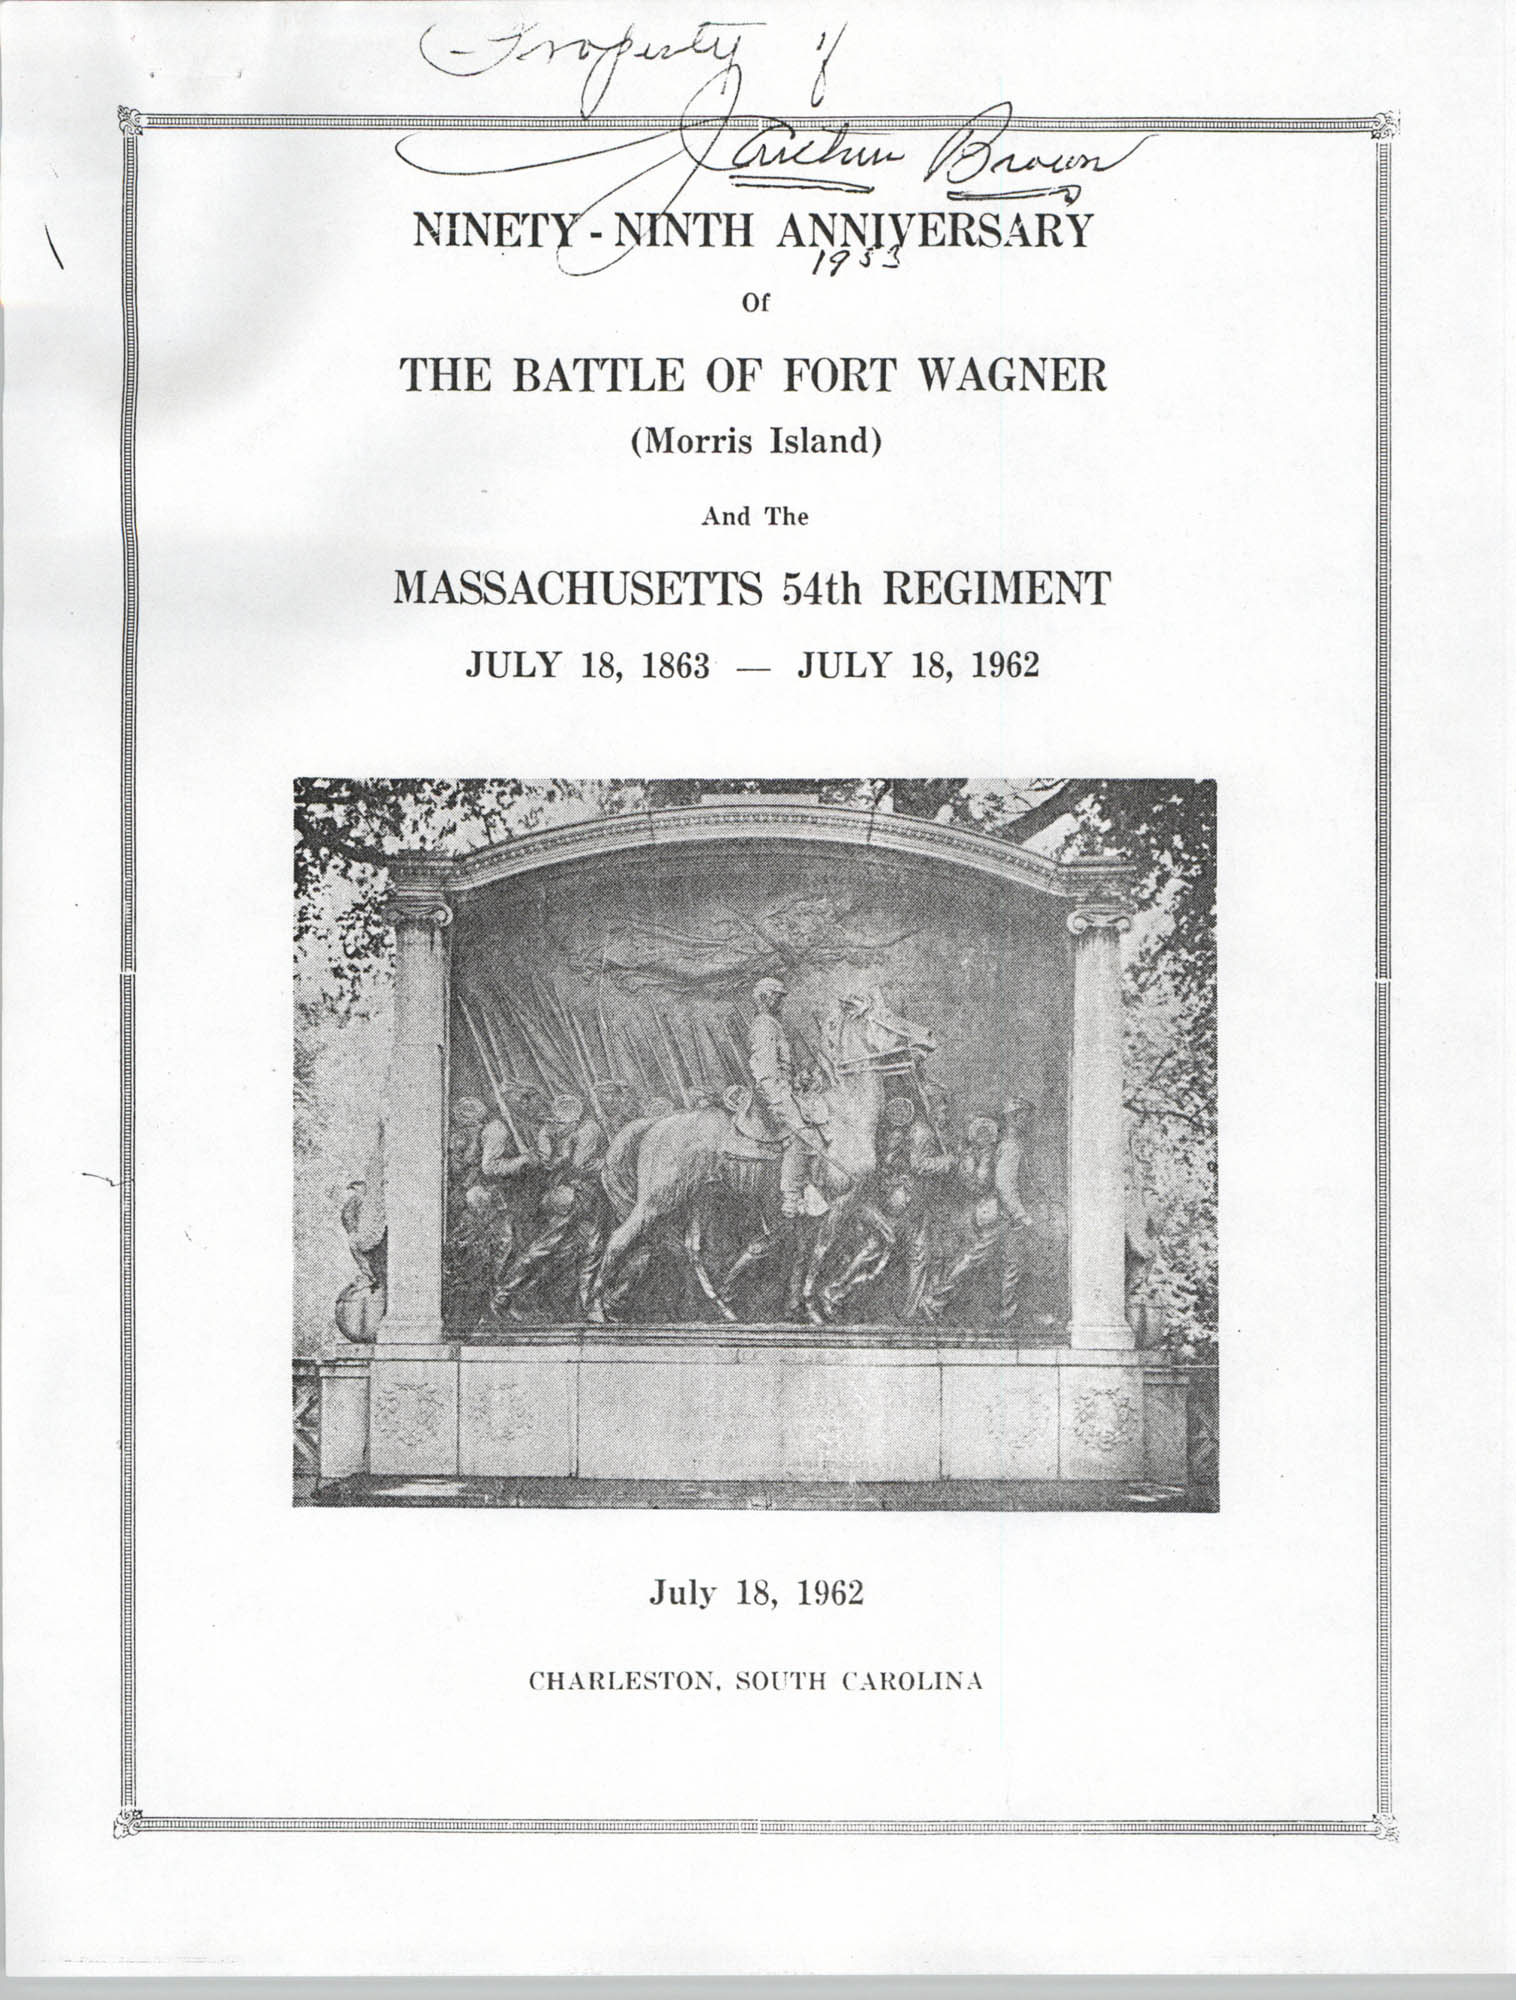 Ninety-Ninth Anniversary of the Battle of Fort Wagner Program, Cover